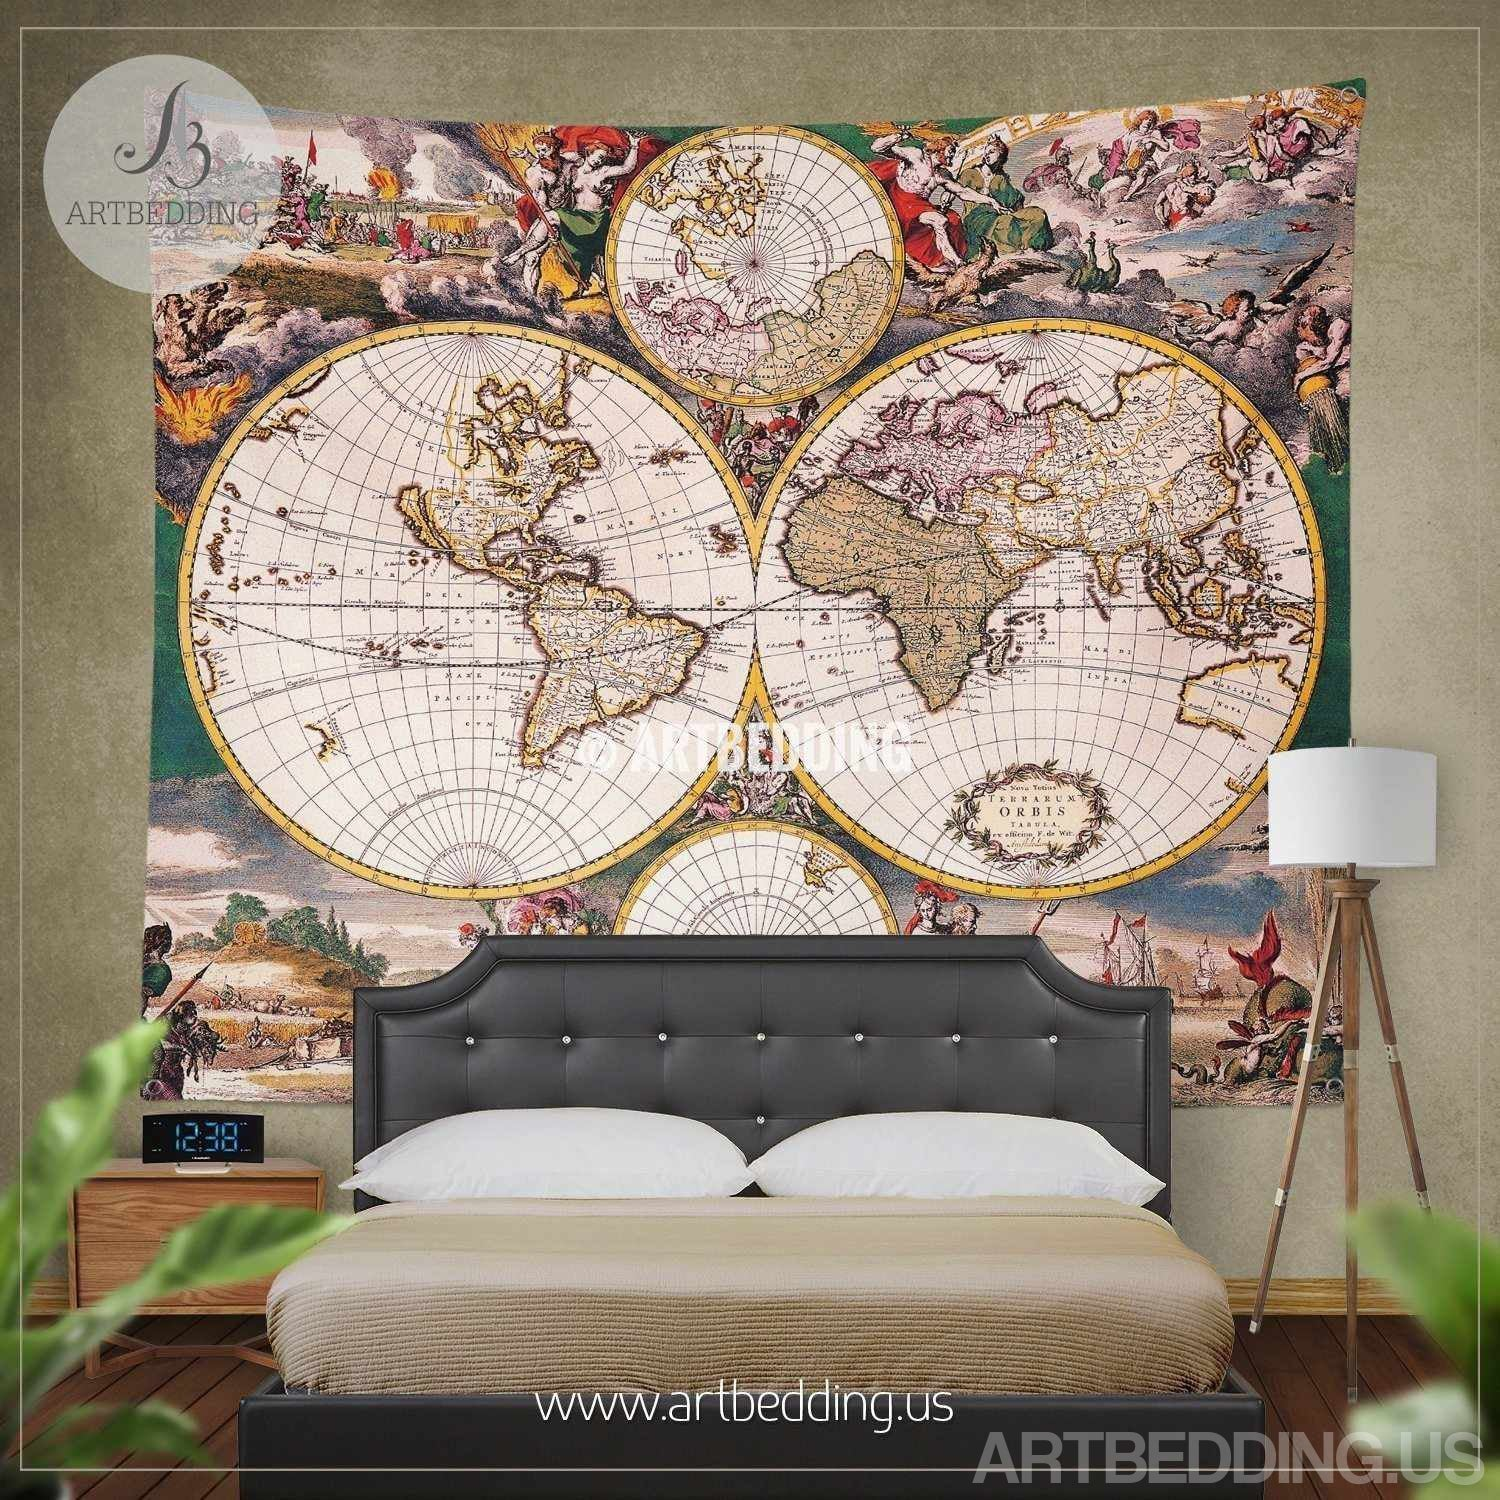 Old world map bedding vintage 18th century hemisphere illustration old world map bedding vintage 18th century hemisphere illustration map duvet cover set colorful gumiabroncs Image collections